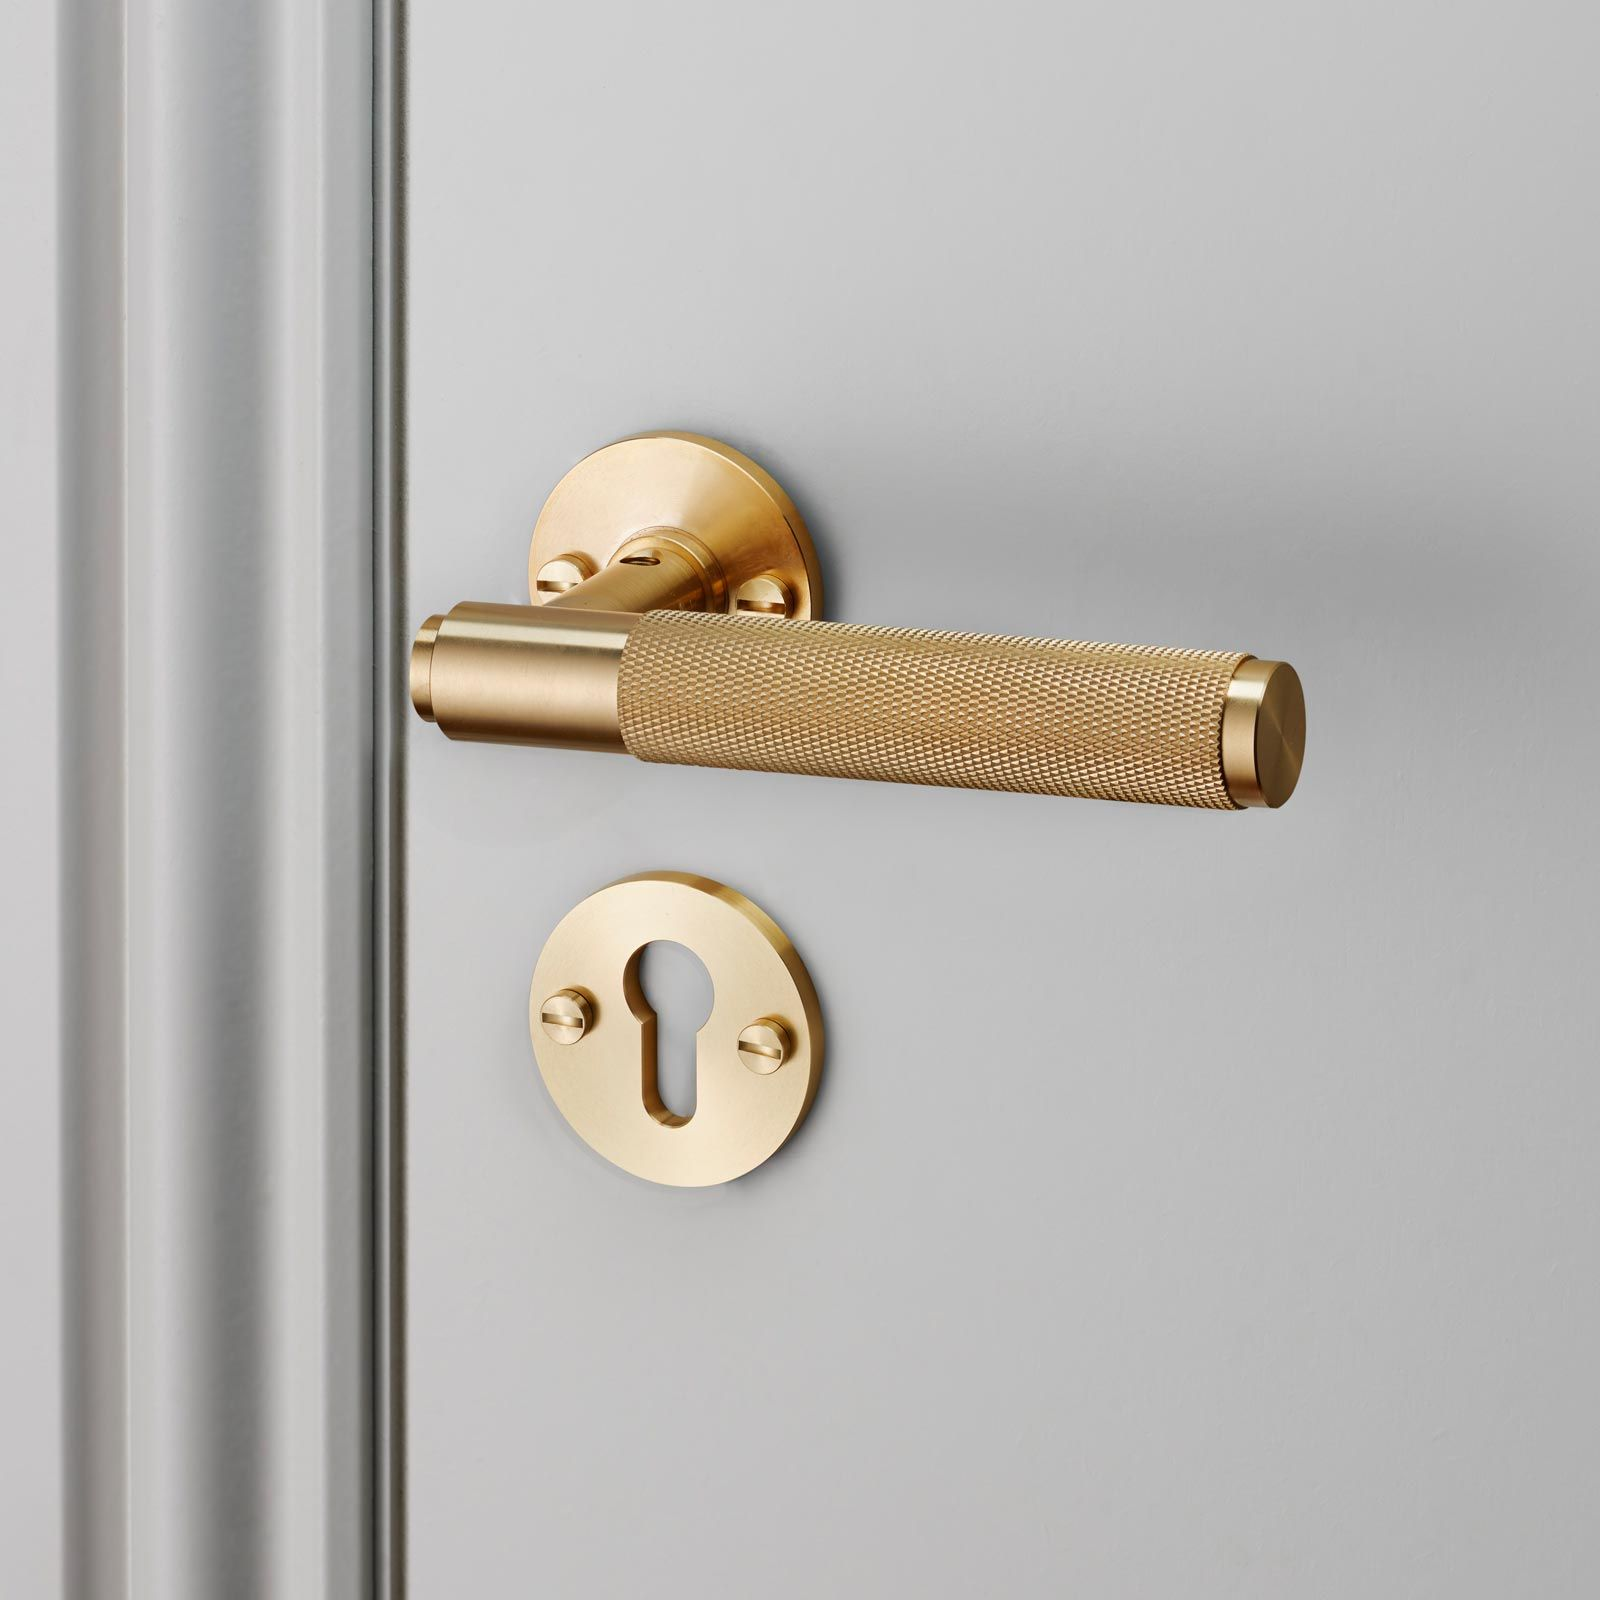 Buster & Punch New Hardware Collection | Hardware, Door ...